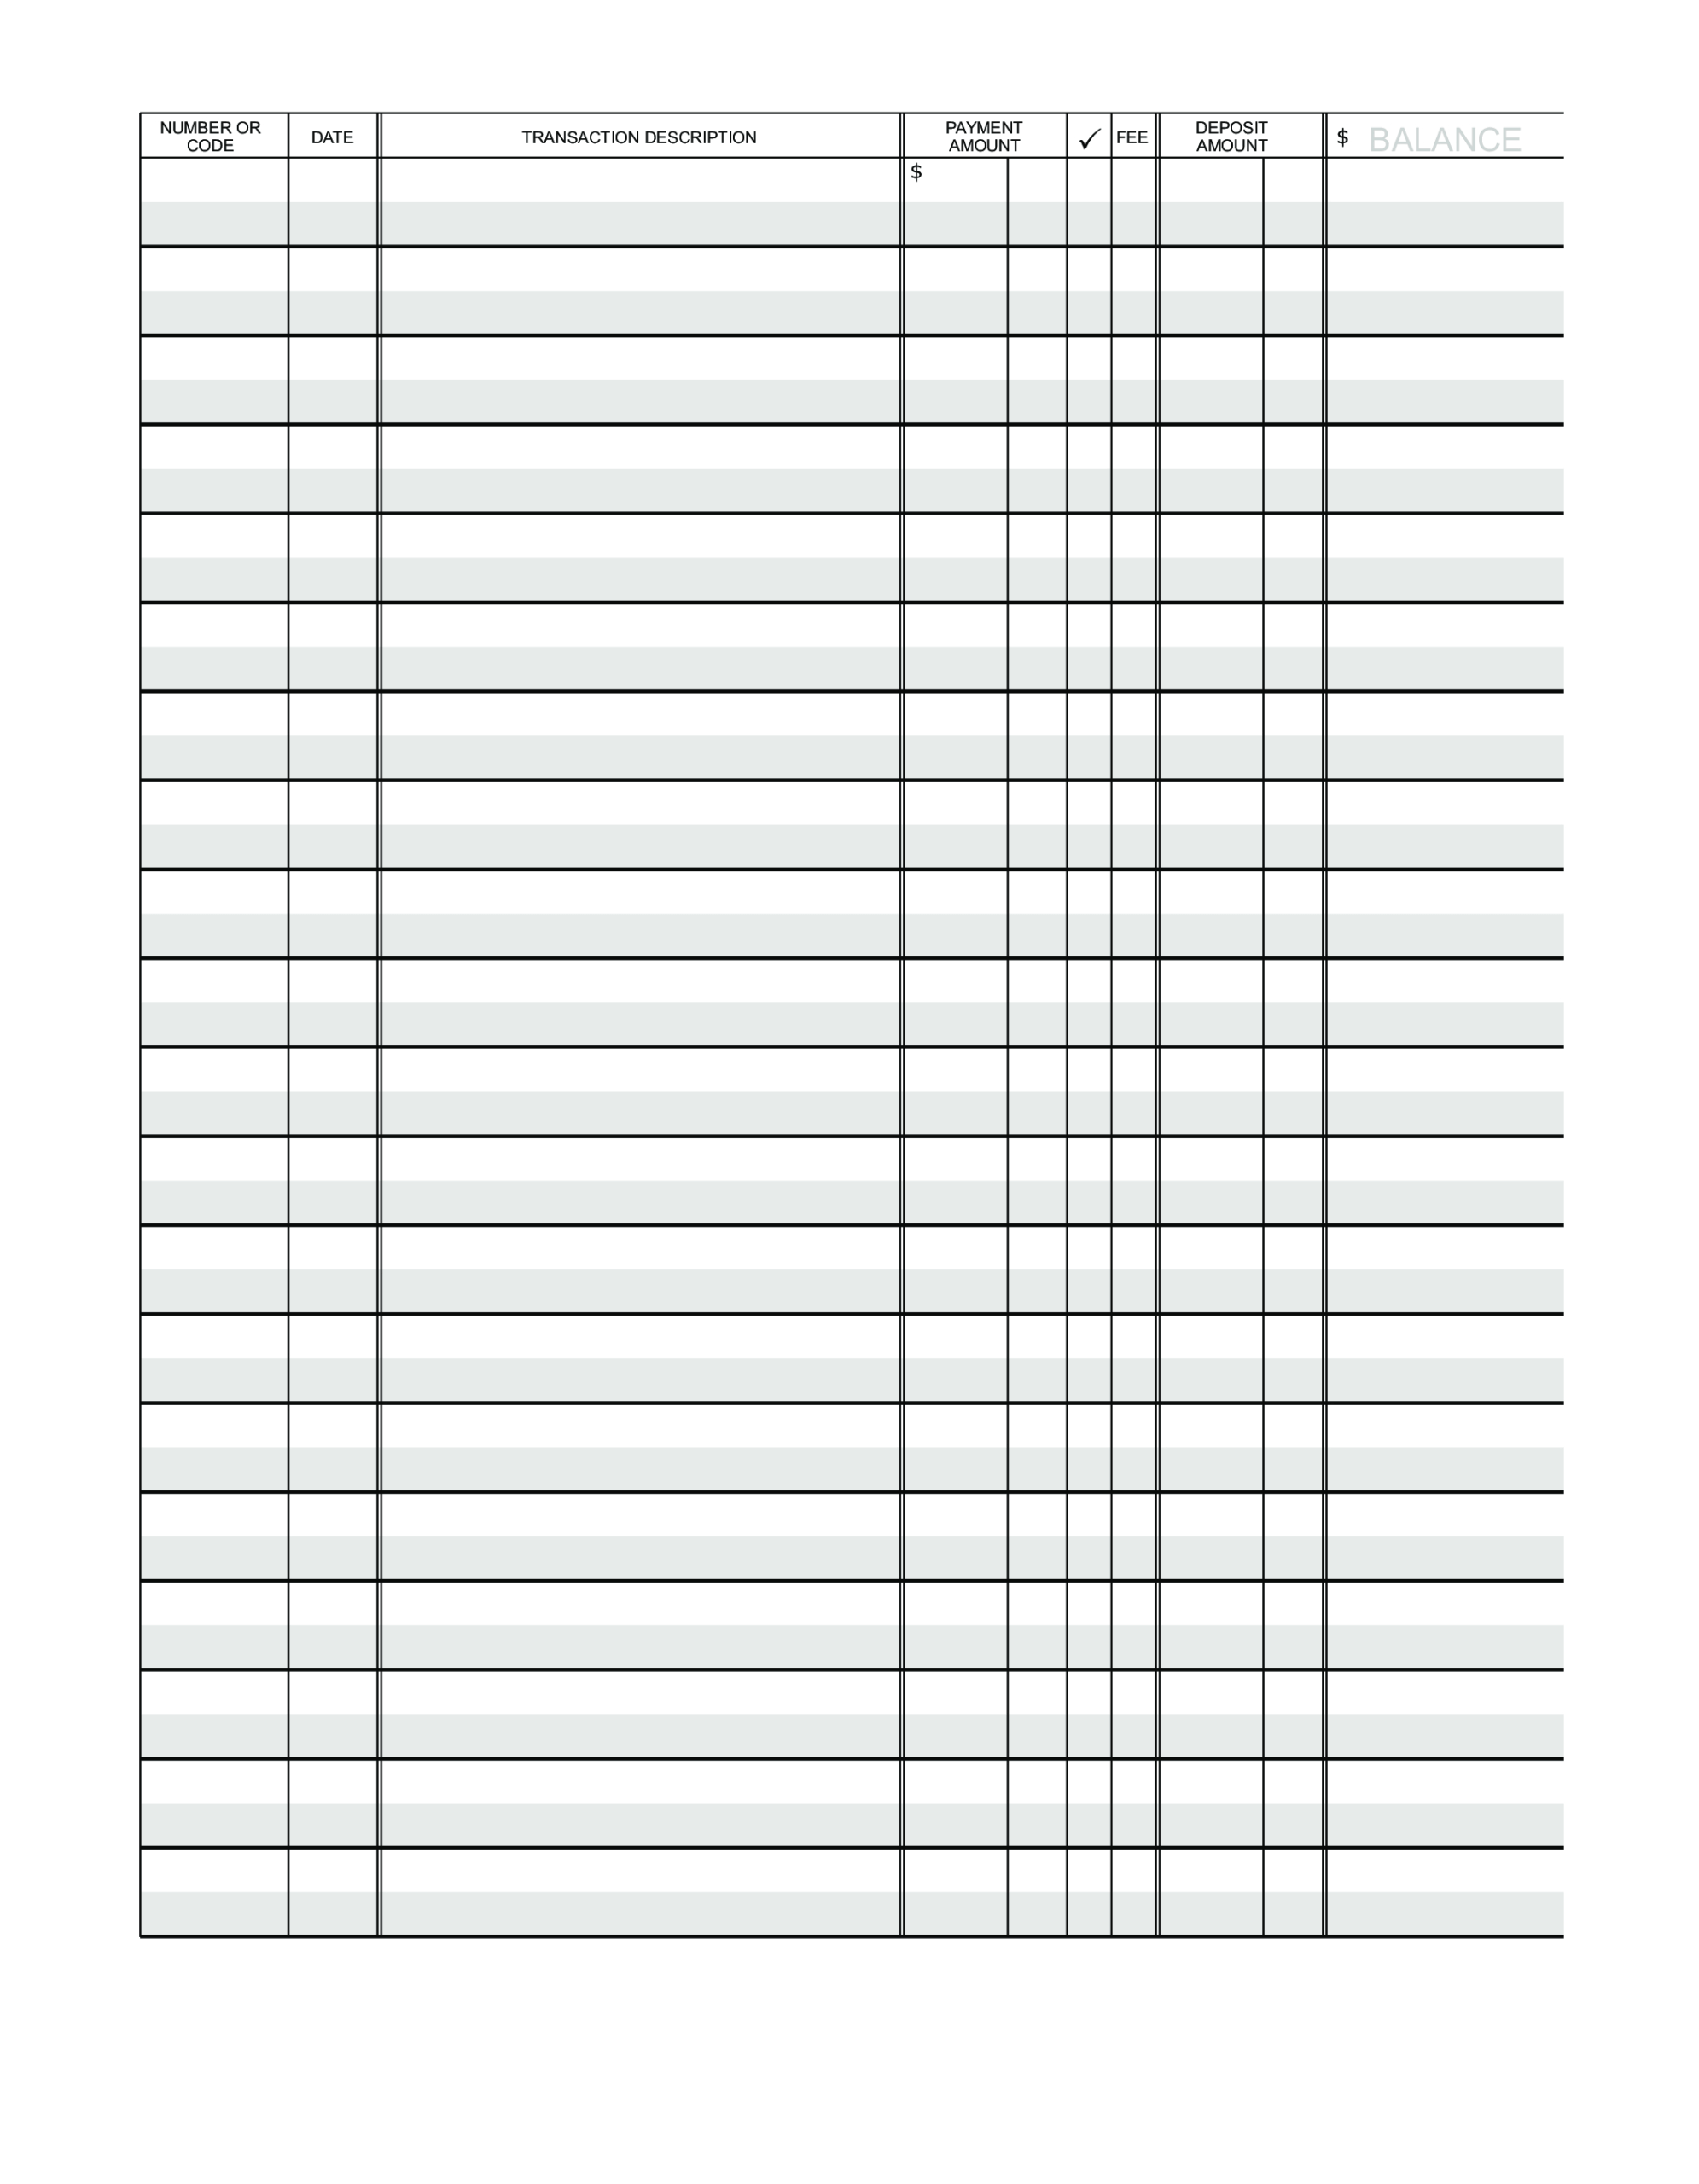 Blank Ledger Paper | Templates At Allbusinesstemplates With Blank Ledger Template